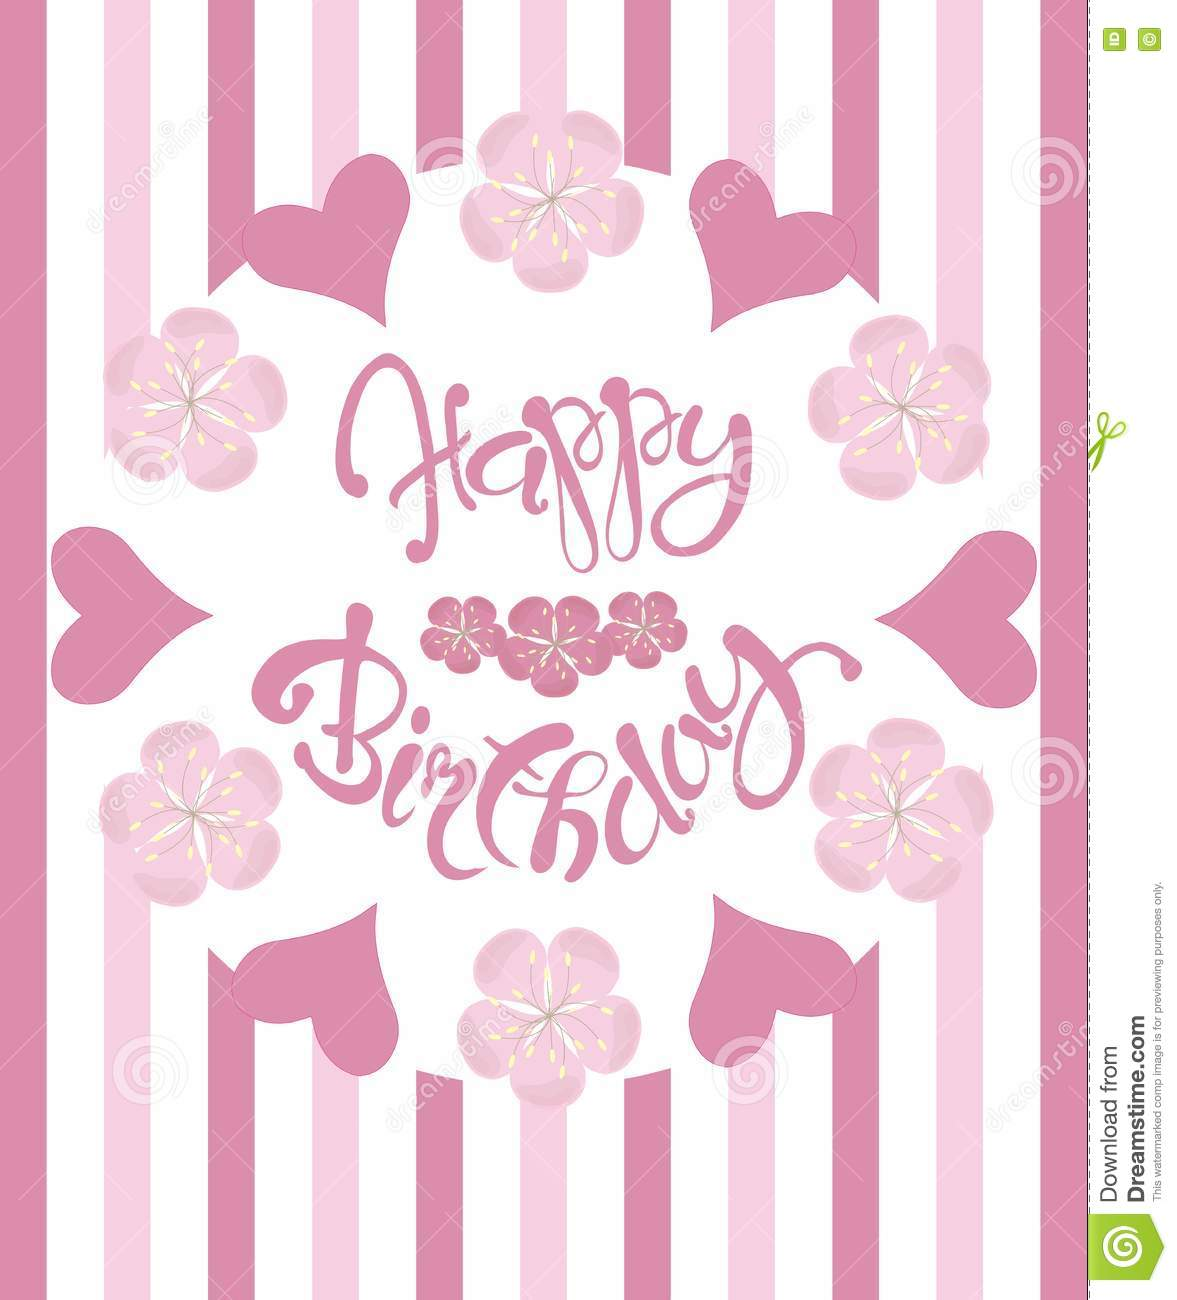 Beautiful Vintage Floral Happy Birthday Congratulation Card Hand Draw Pink Flowers And Hearts Lettering